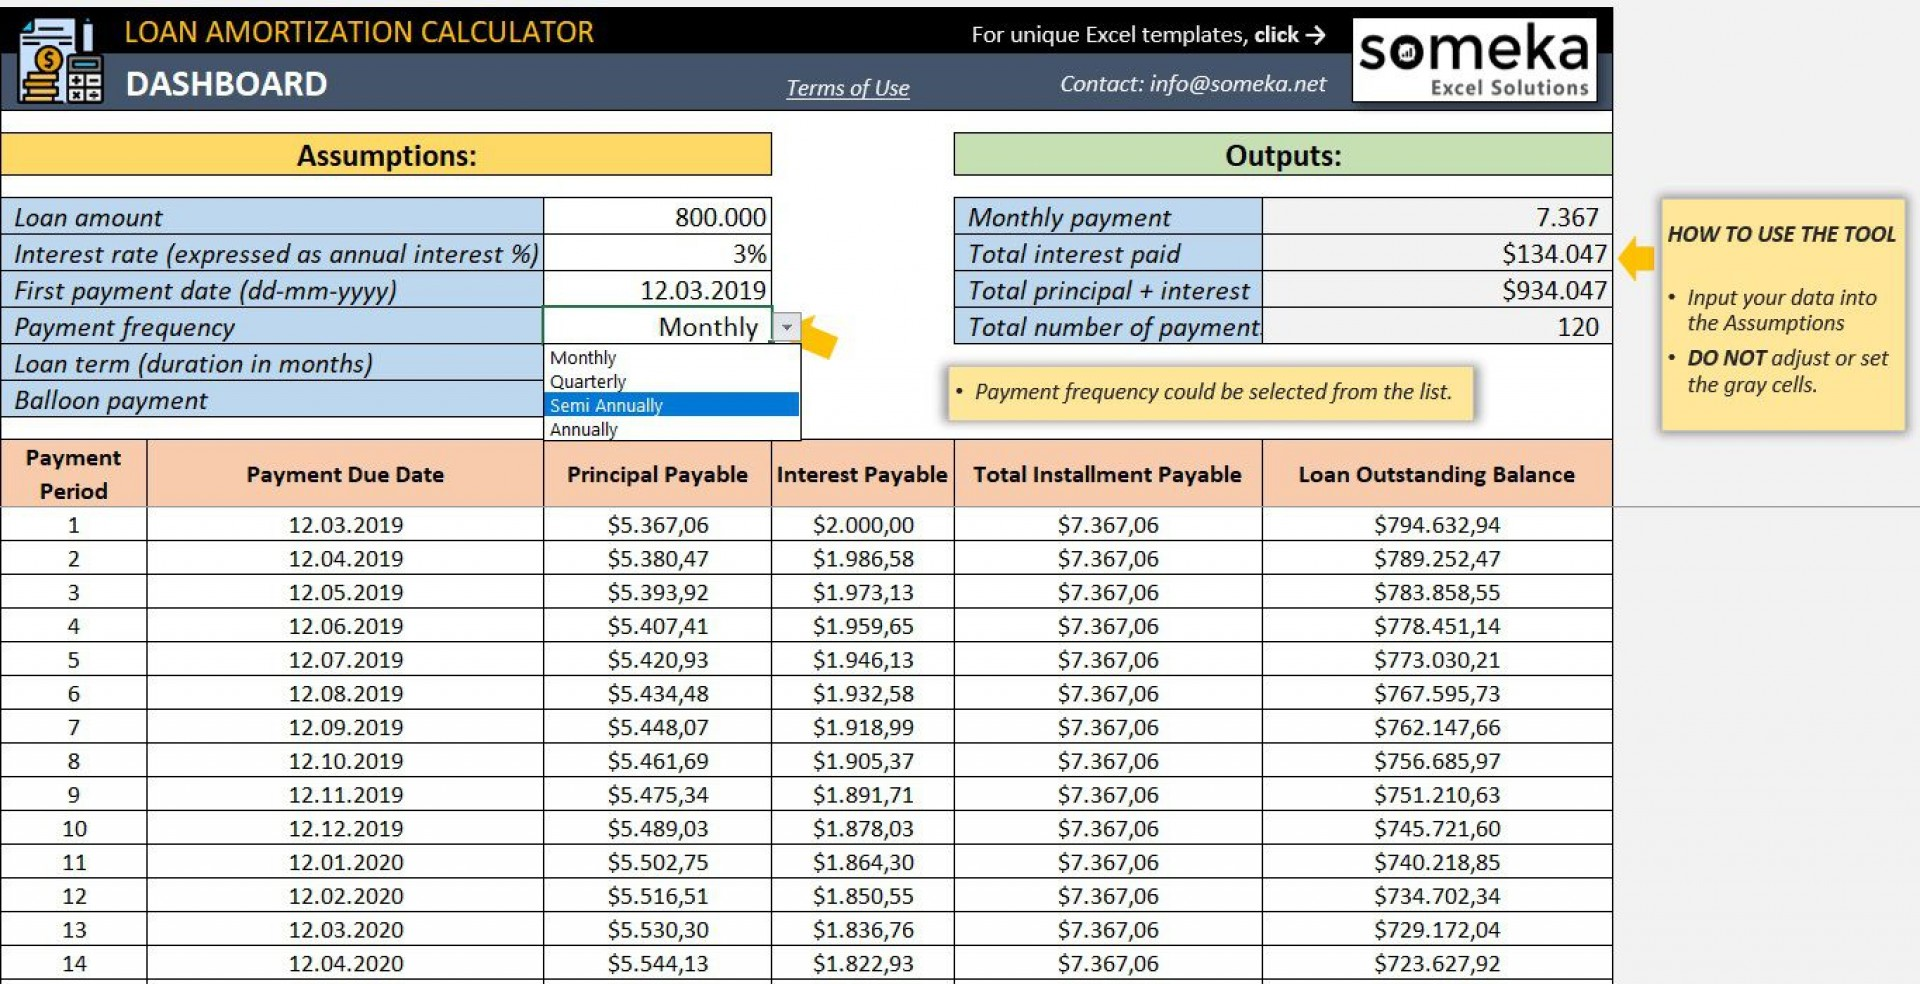 004 Surprising Loan Amortization Template Excel Inspiration  Schedule Free Download1920